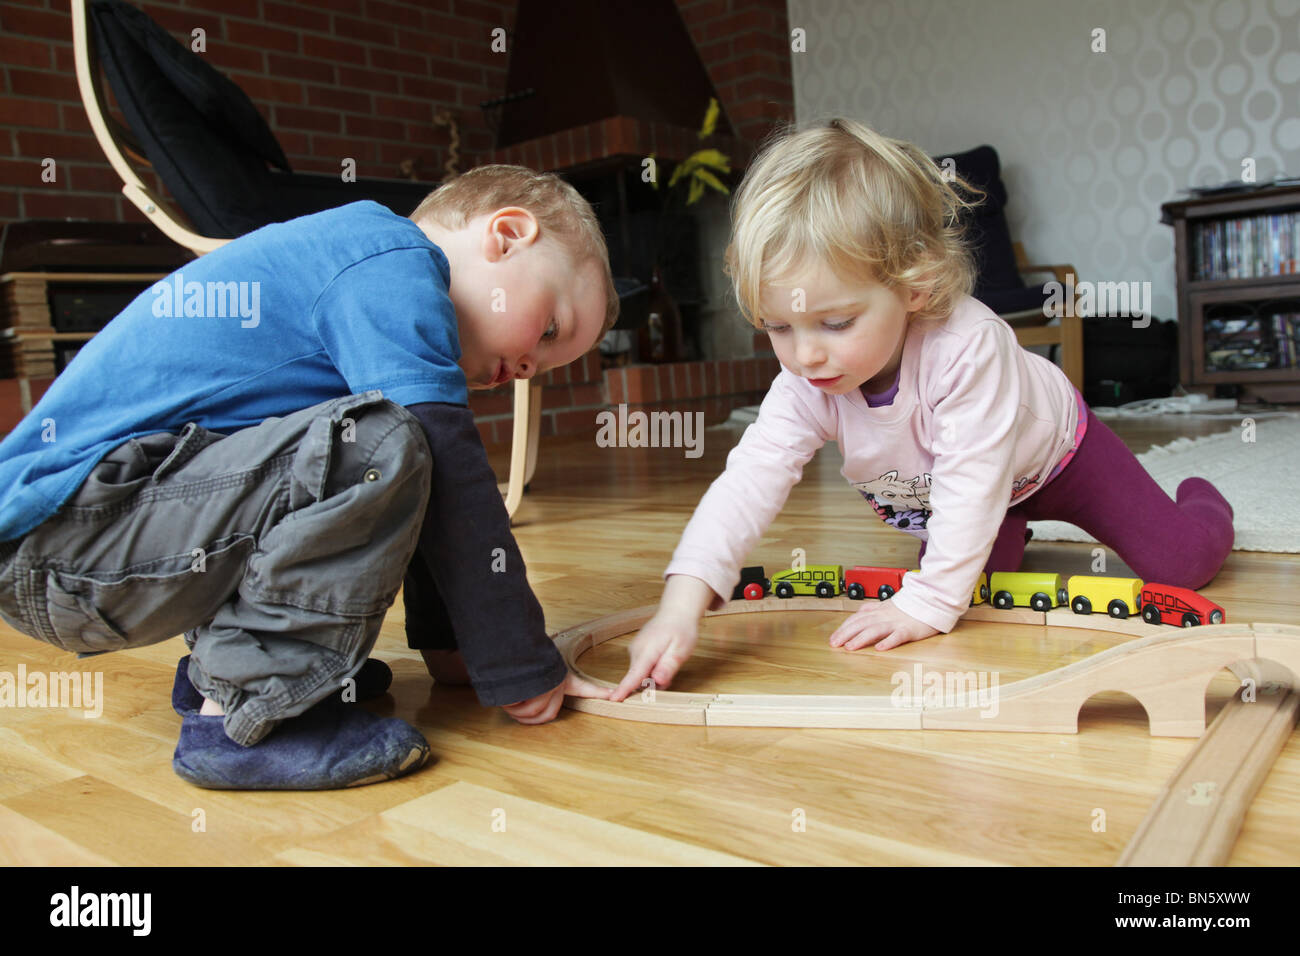 Toddlers Boy Girl Playing Together With A Traditional